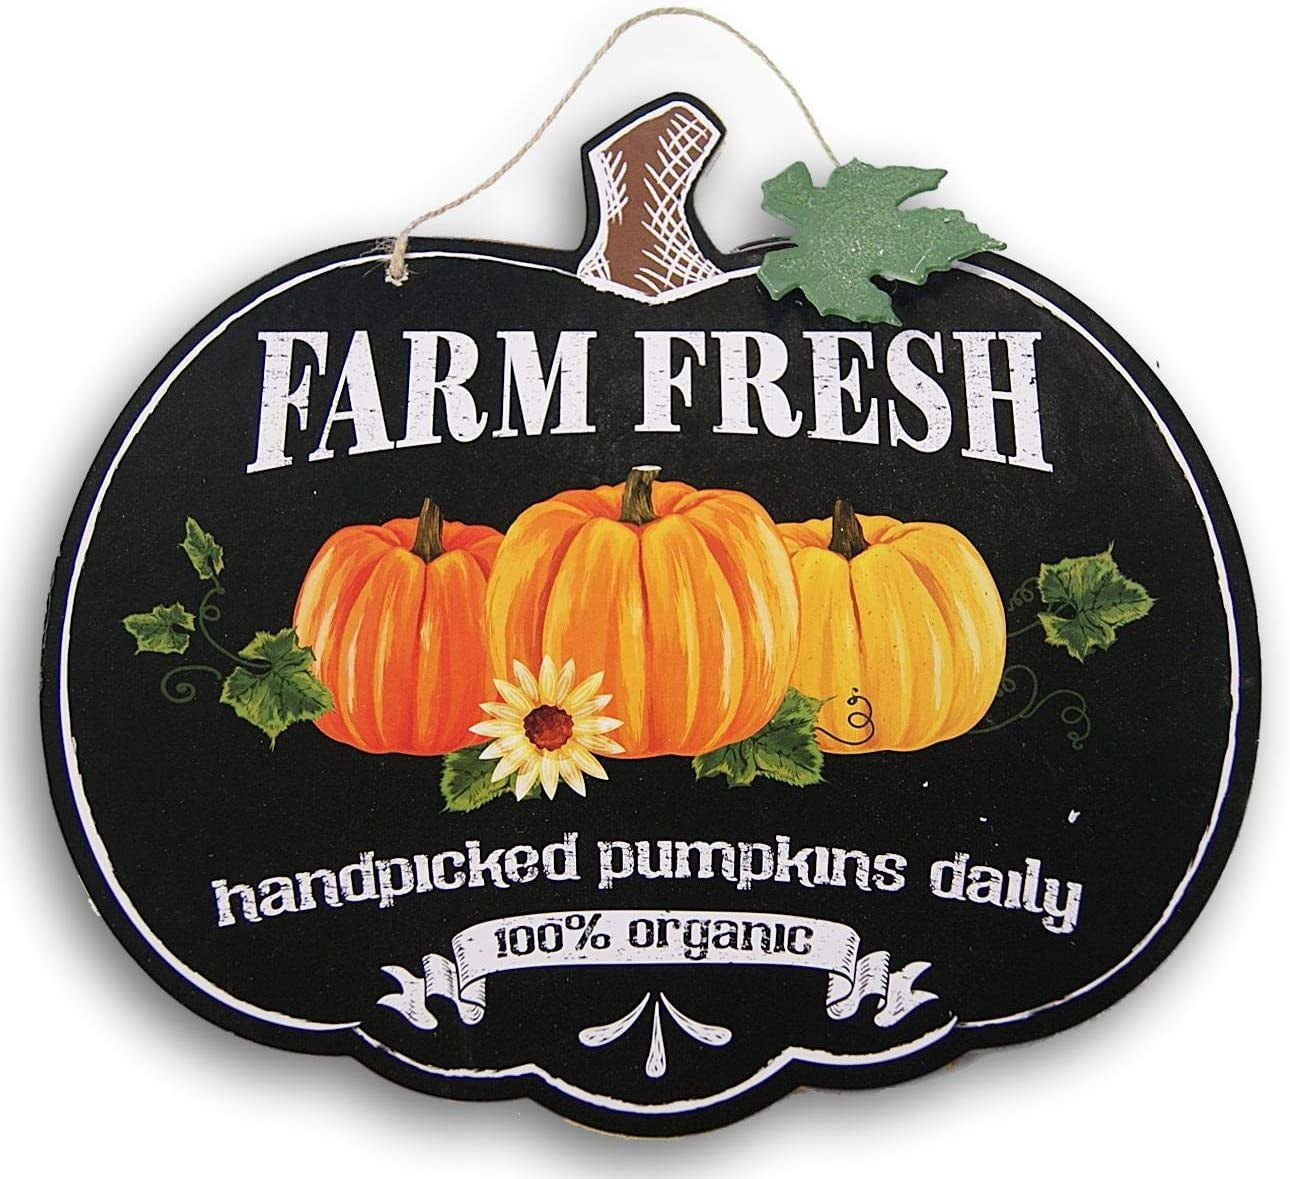 Fantastic Fall Decorative Pumpkin Shaped ''Farm Fresh'' Hanging Sign - 11.5 x 10.5 Inches